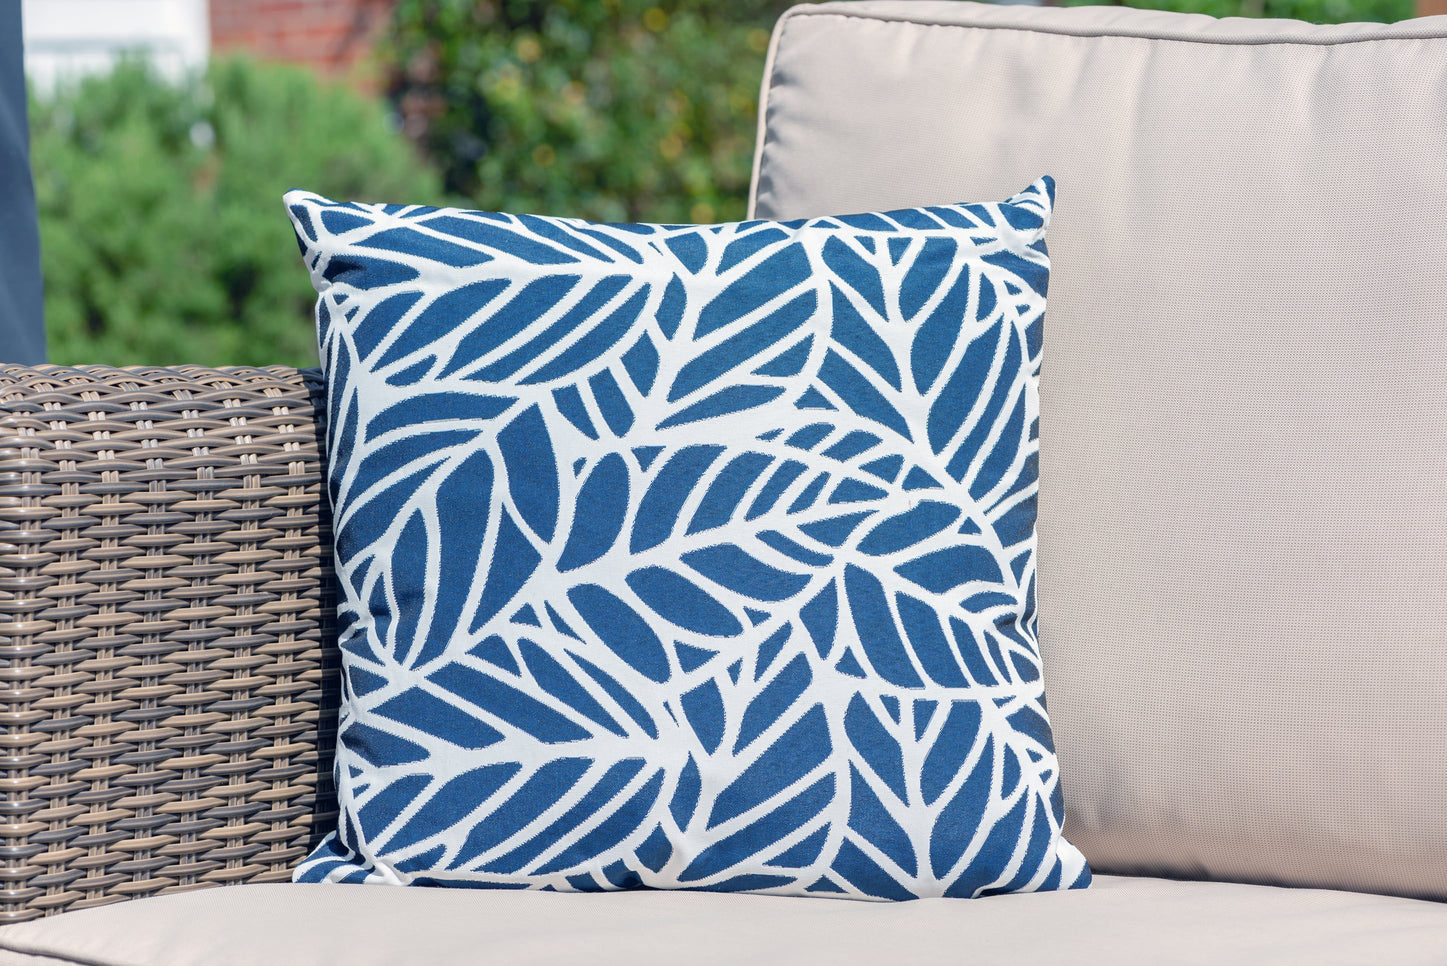 Armadillo Sun waterproof cushion in dark blue and white palm pattern